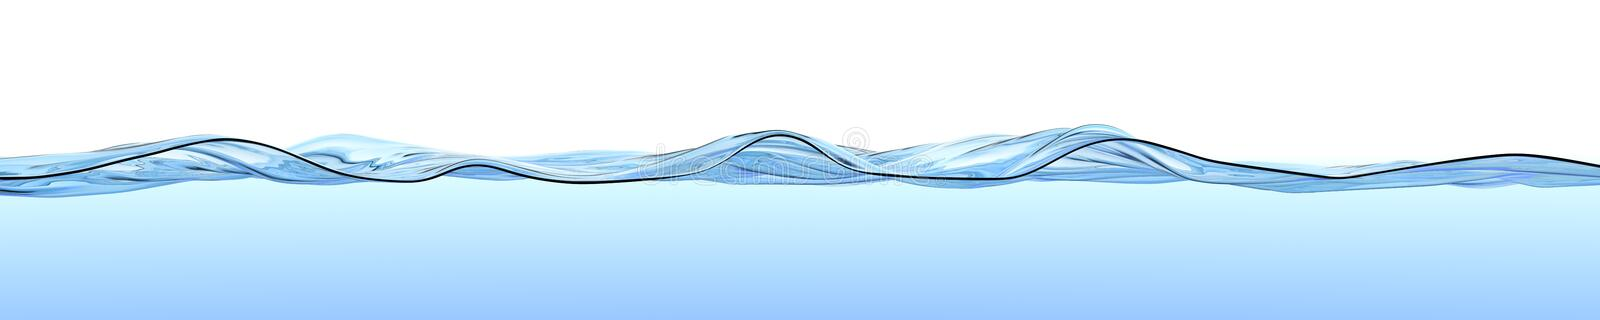 Water surface with waves and ripples. vector illustration